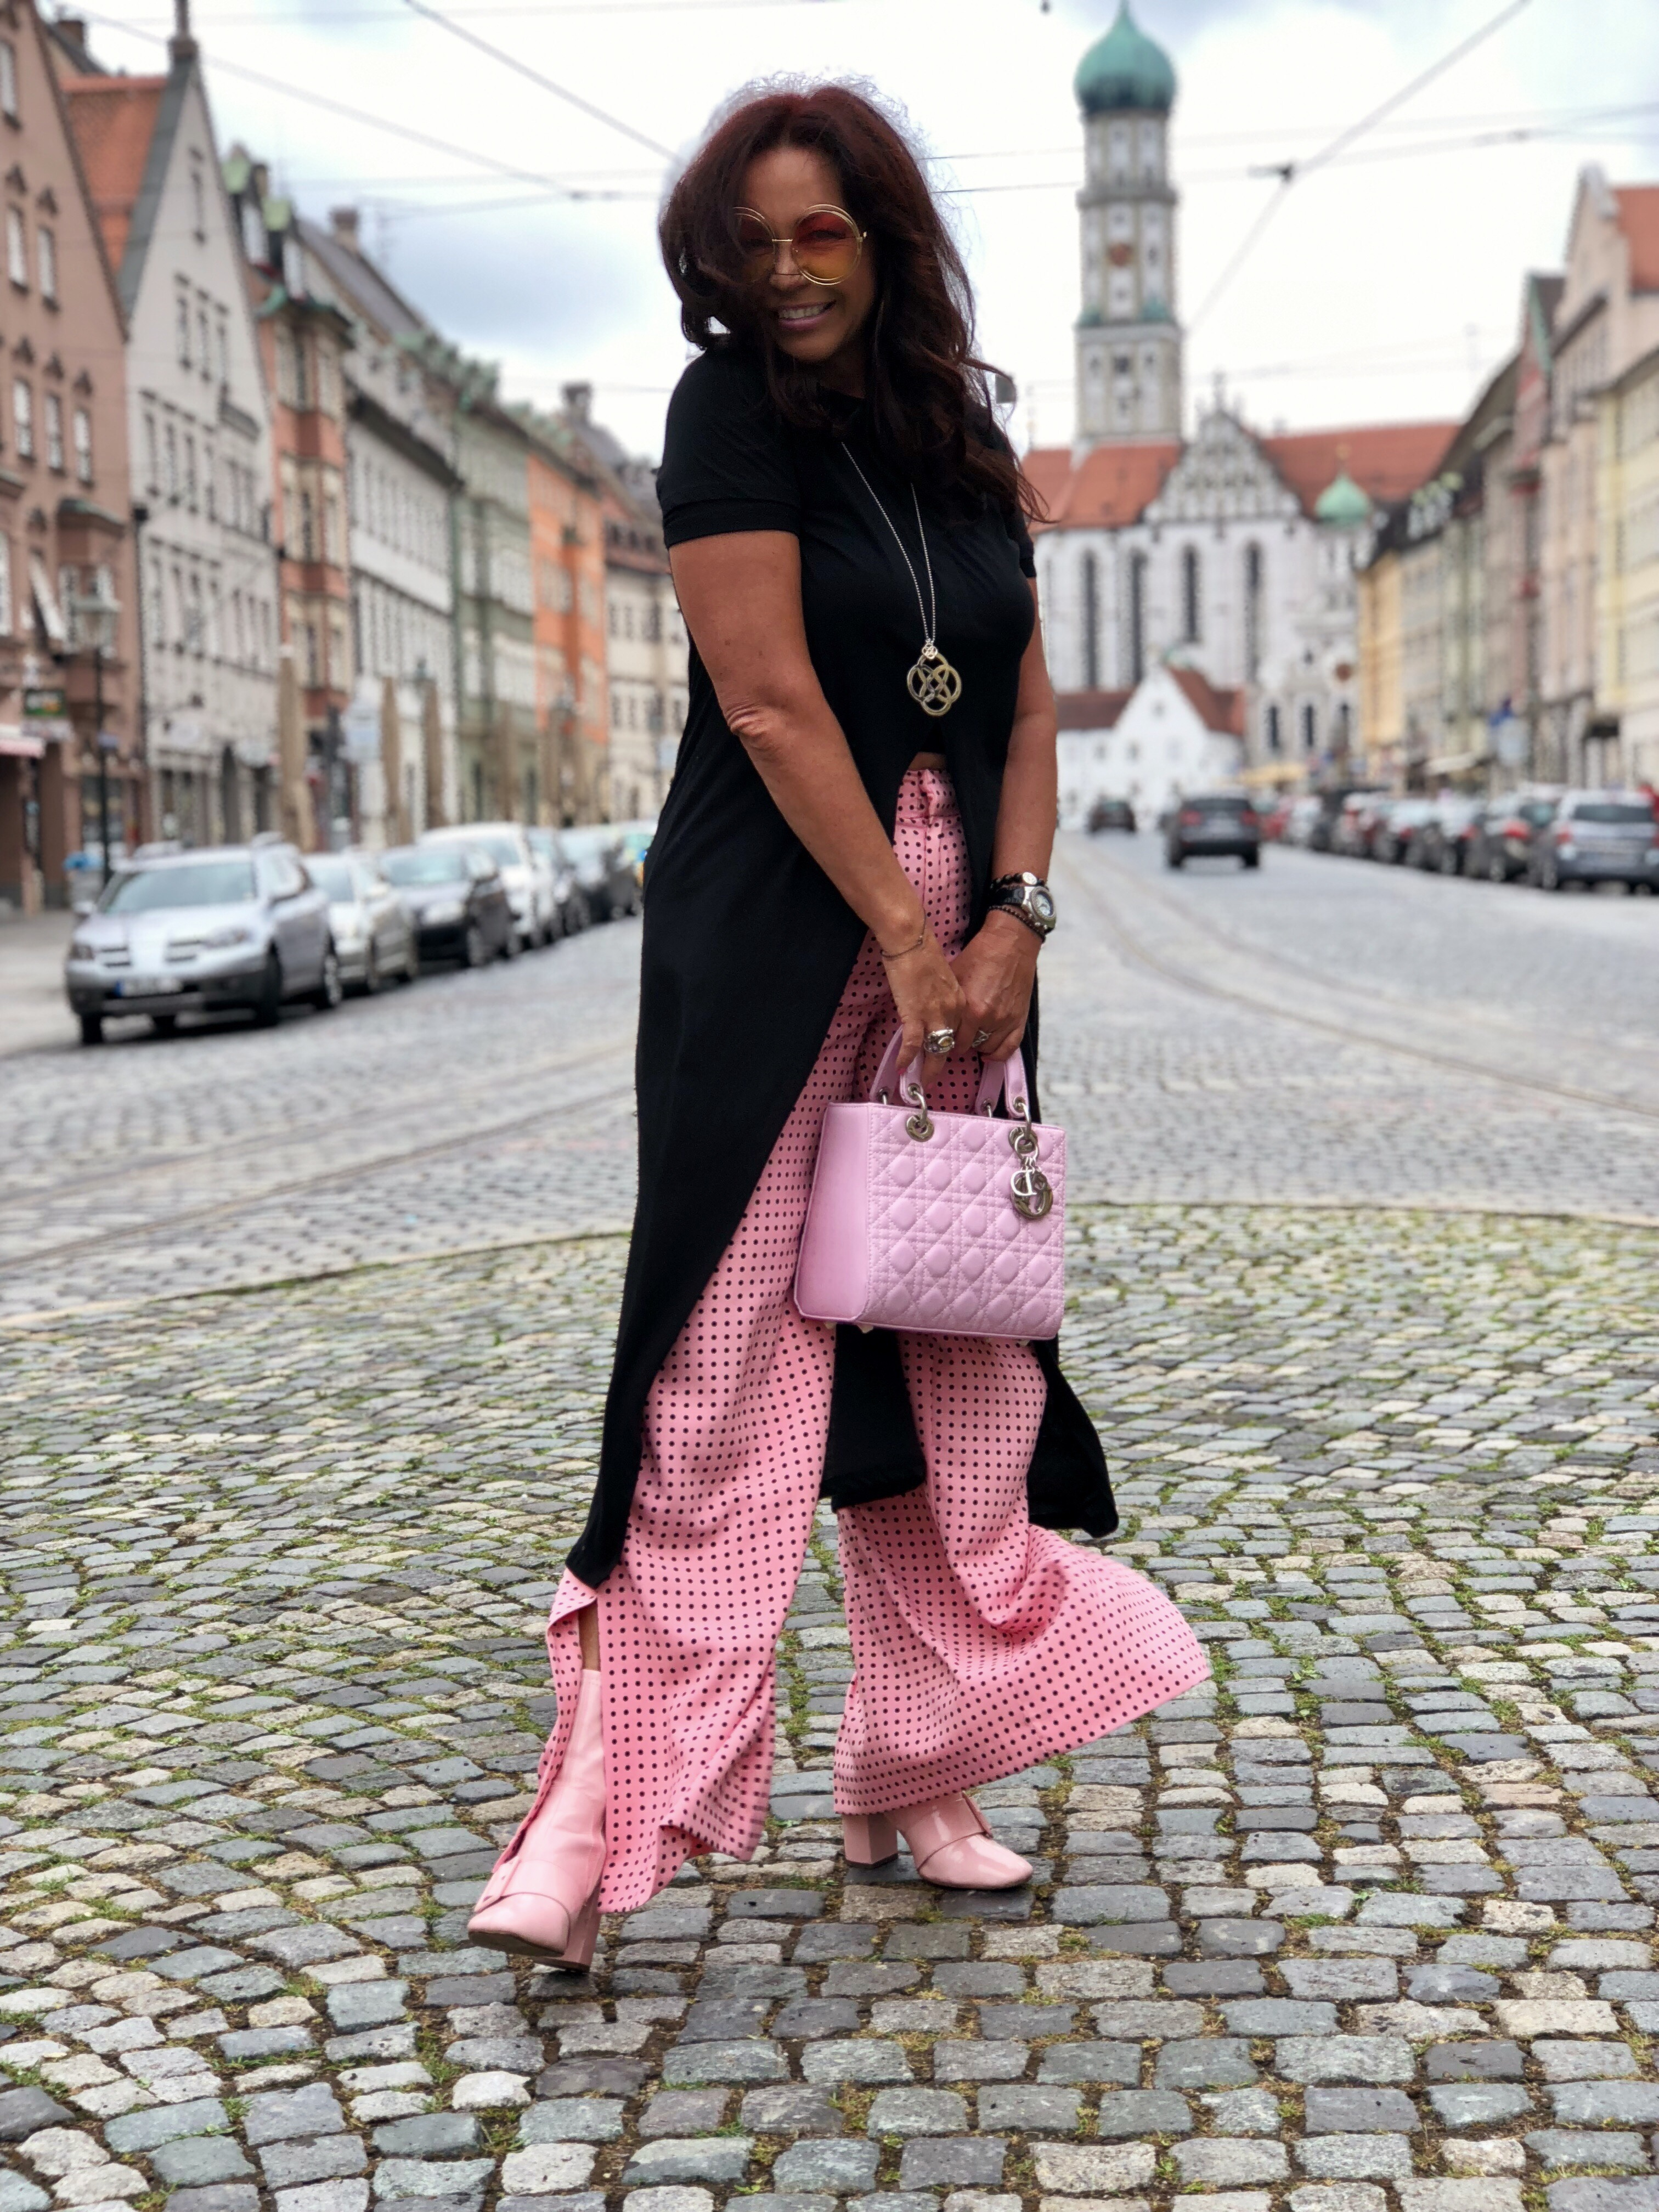 Pink Zara pants with polka dots, Zara Top, Dior Bag, Asos Boots, Chloe Sunglasses, Style for Ladies, ageless fashion, bestage, mystyle, fashionblogger, Fashionblog Augsburg, Bekleidung, Modeblogger, streetchic, streetstyle